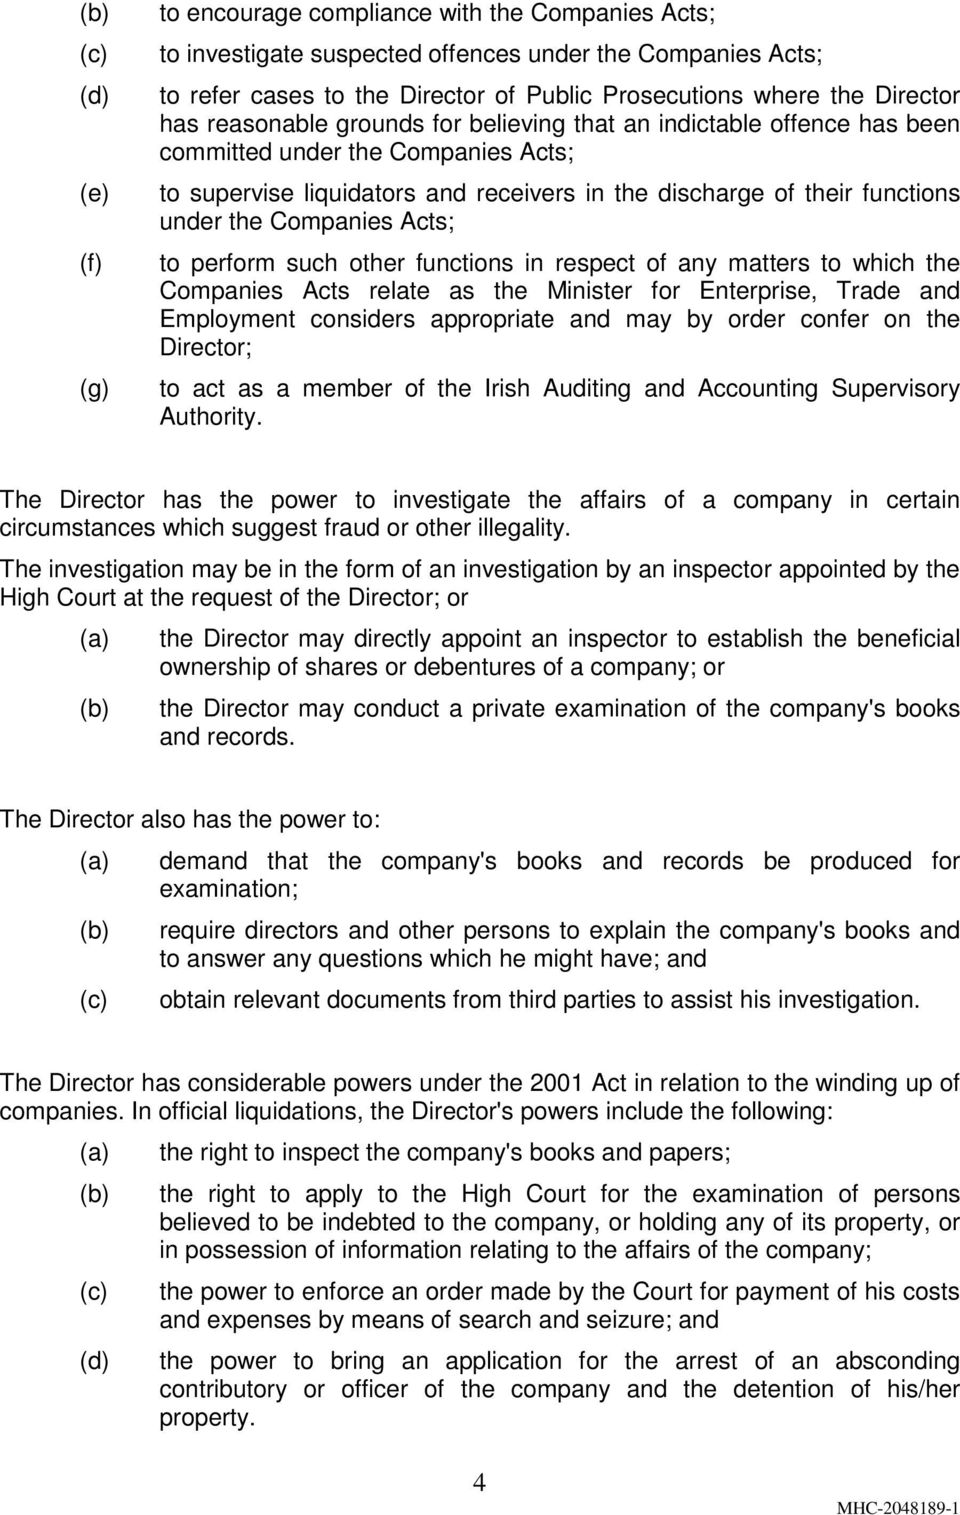 the Companies Acts; to perform such other functions in respect of any matters to which the Companies Acts relate as the Minister for Enterprise, Trade and Employment considers appropriate and may by